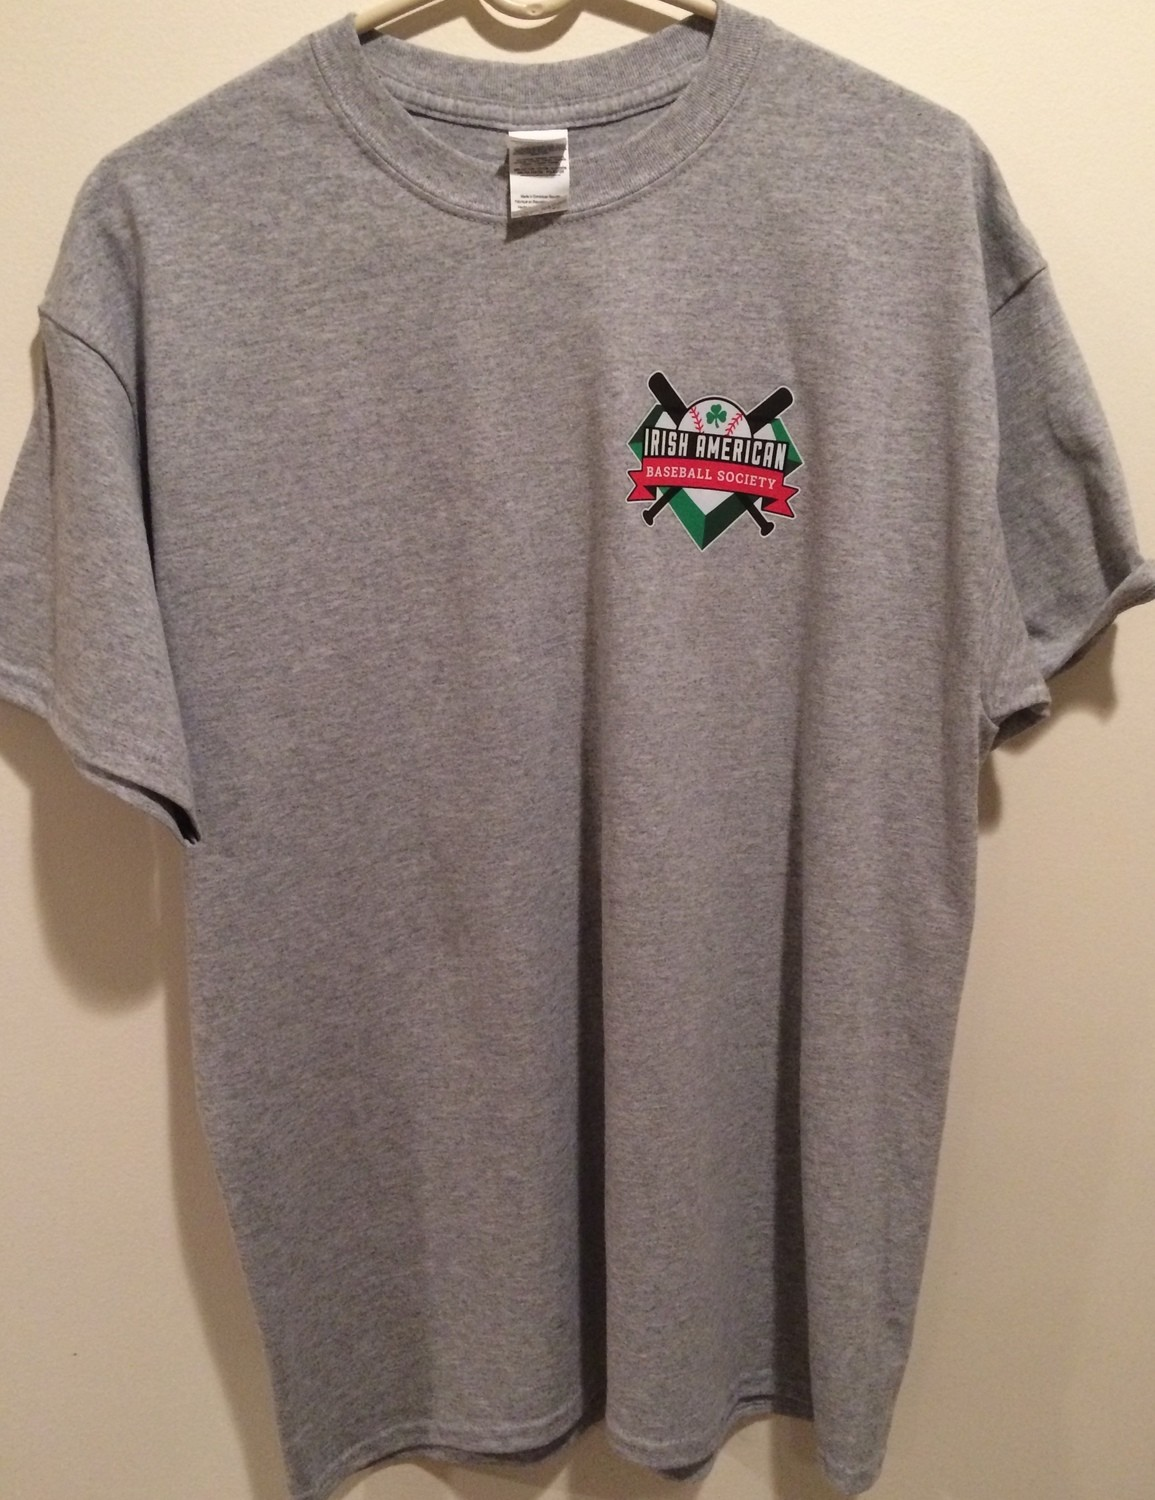 Irish American Baseball Society T-shirt